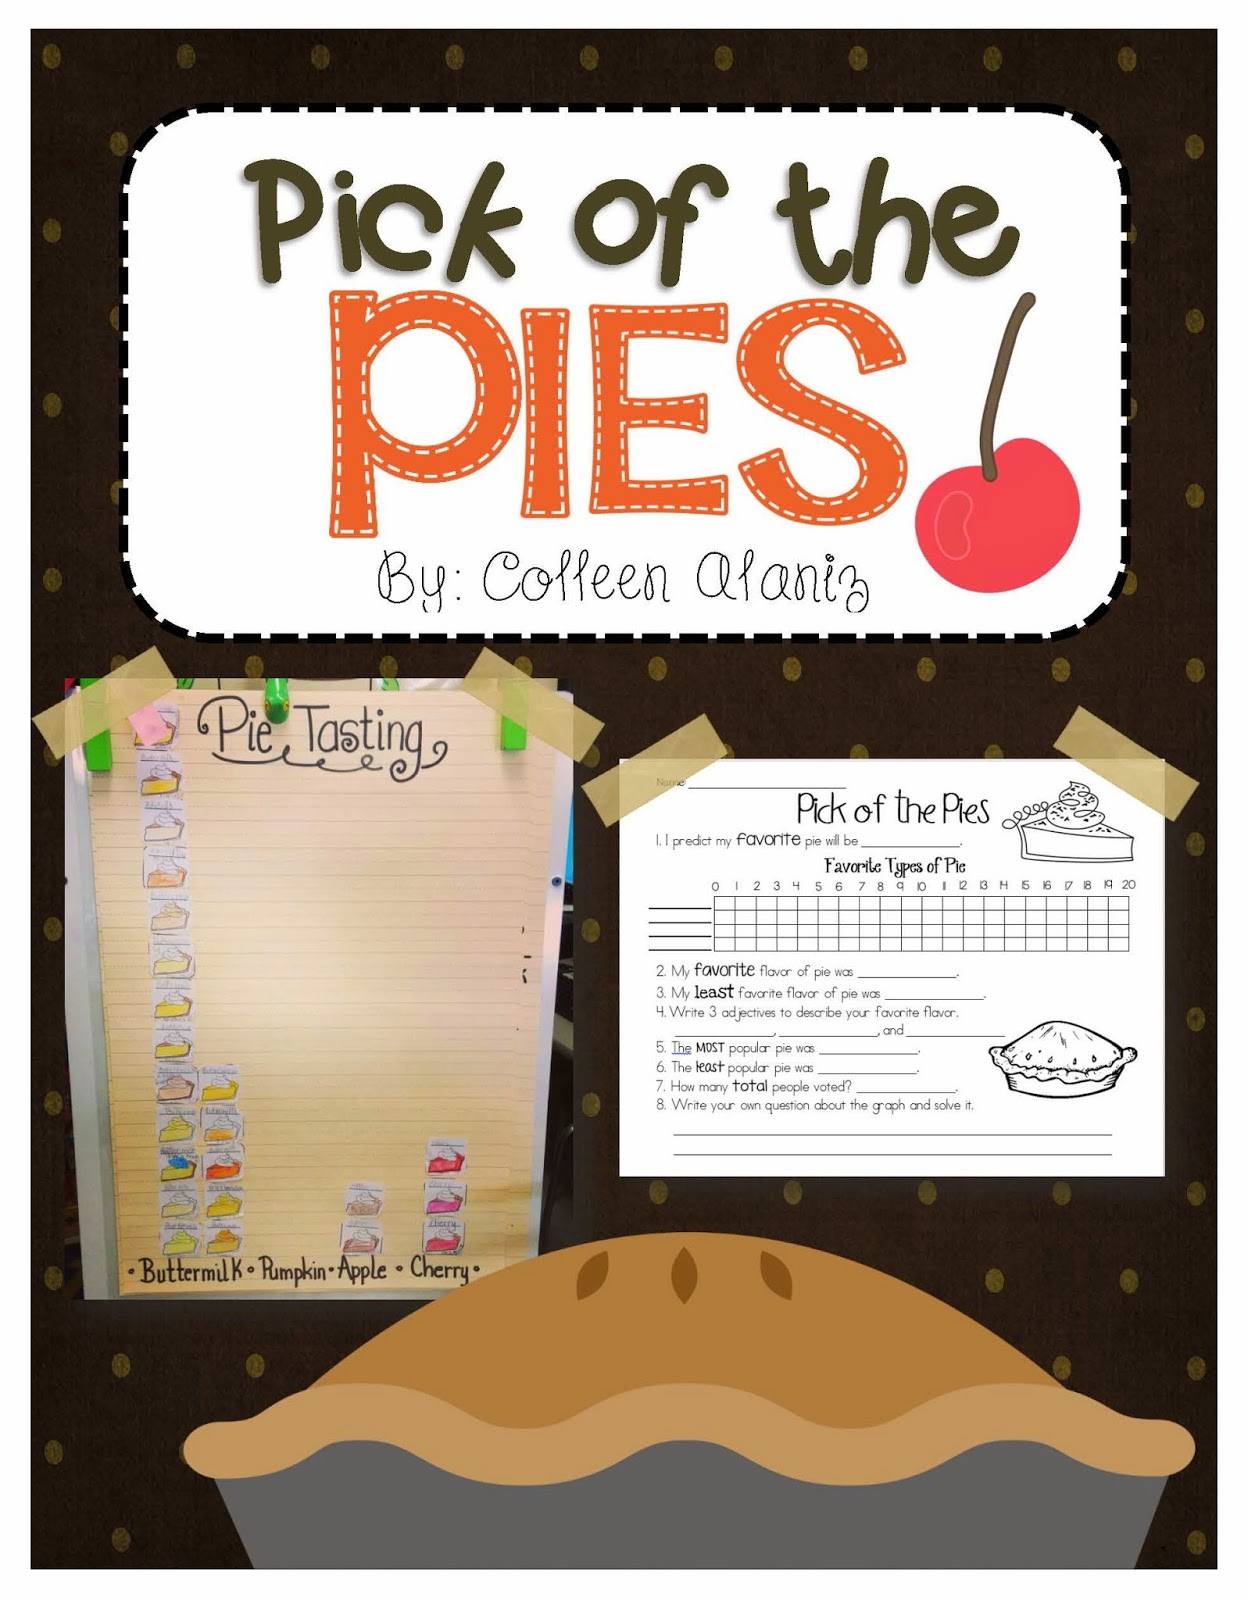 http://www.teacherspayteachers.com/Product/Pick-of-the-Pies-1575117